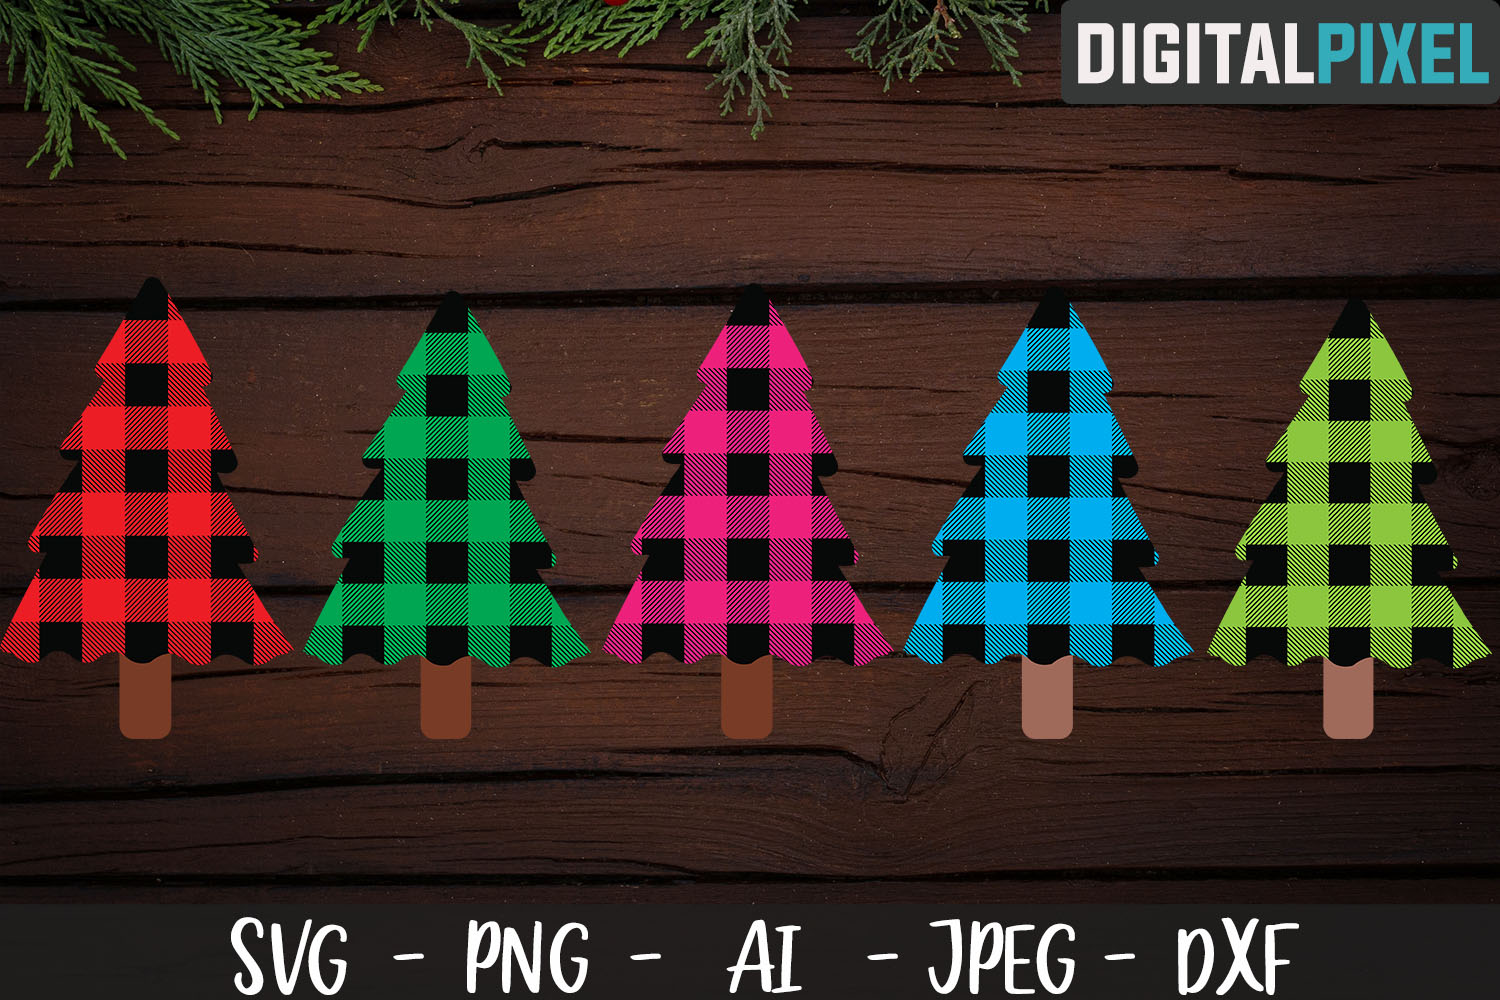 Buffalo Plaid Christmas Tree Bundle SVG PNG JPEG DXF example image 1